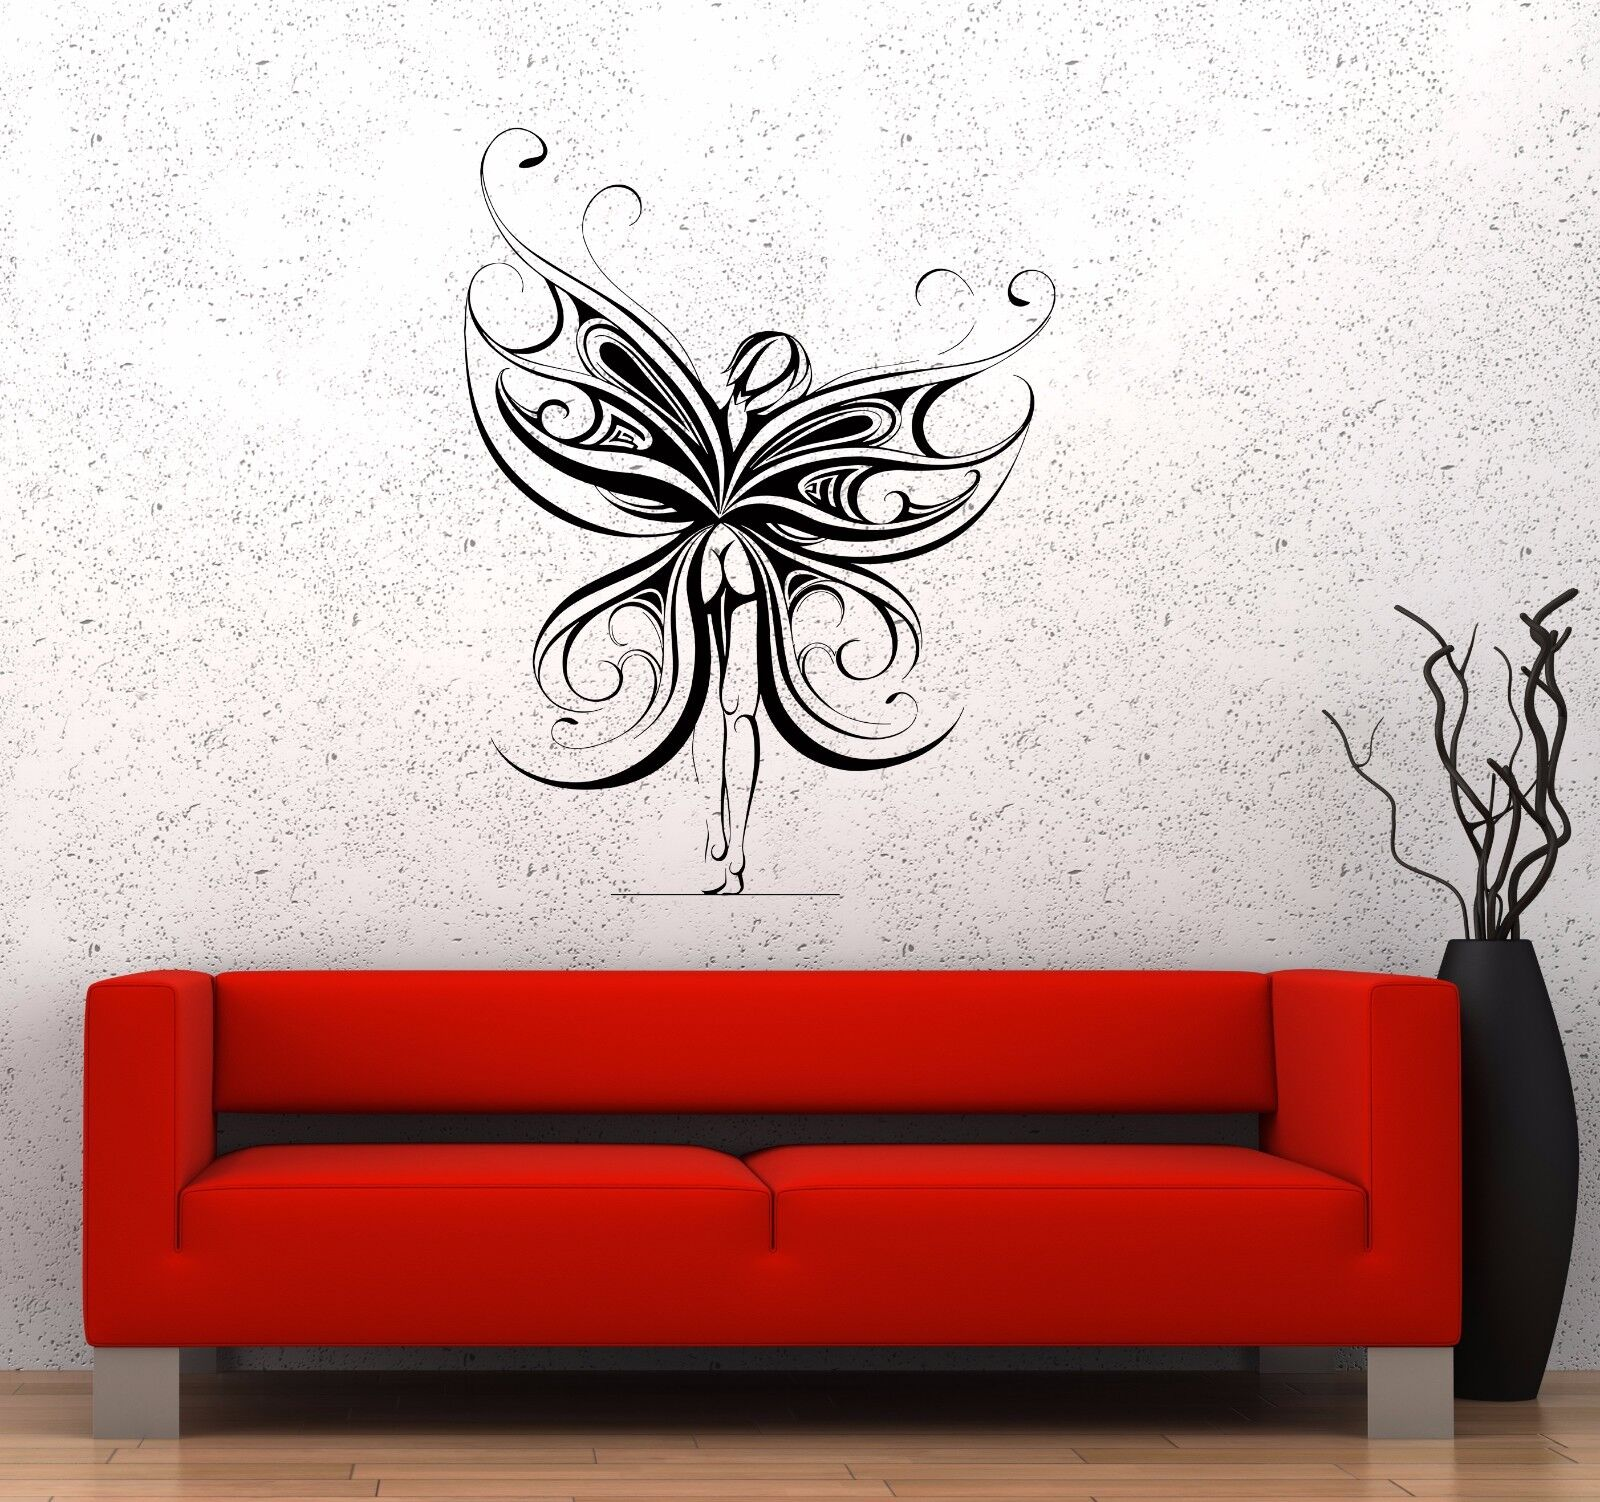 Wall Decal Naked Girl Butterfly Nature Fantasy Fairy Tale Vinyl Sticker (ed748)